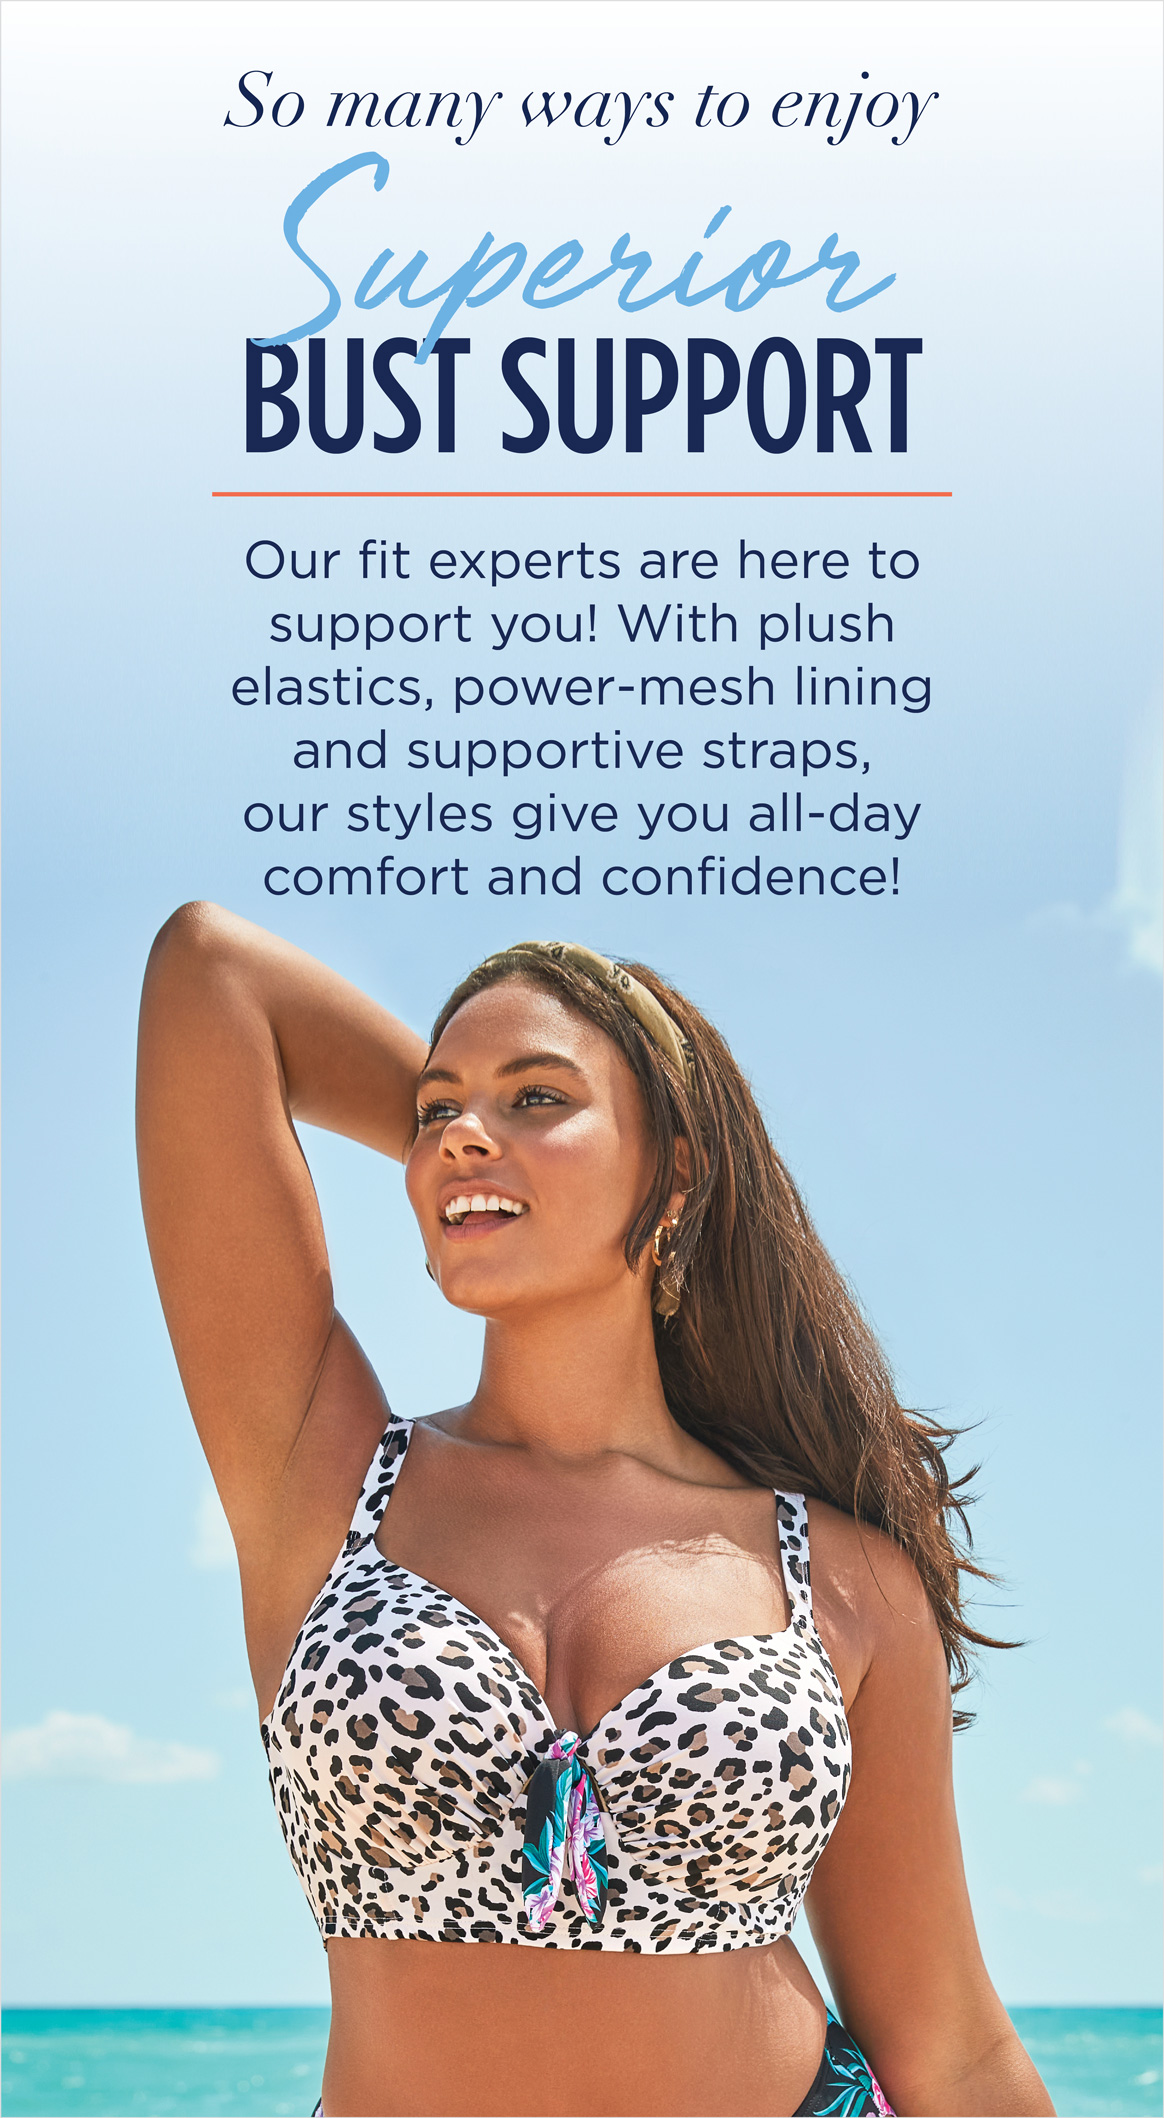 so many ways to enjoy SUPERIOR BUST SUPPORT - our fit experts are here to support you! with plush elastics, power-mesh lining and supportive straps, our styles give you all-day comfort and confidence!